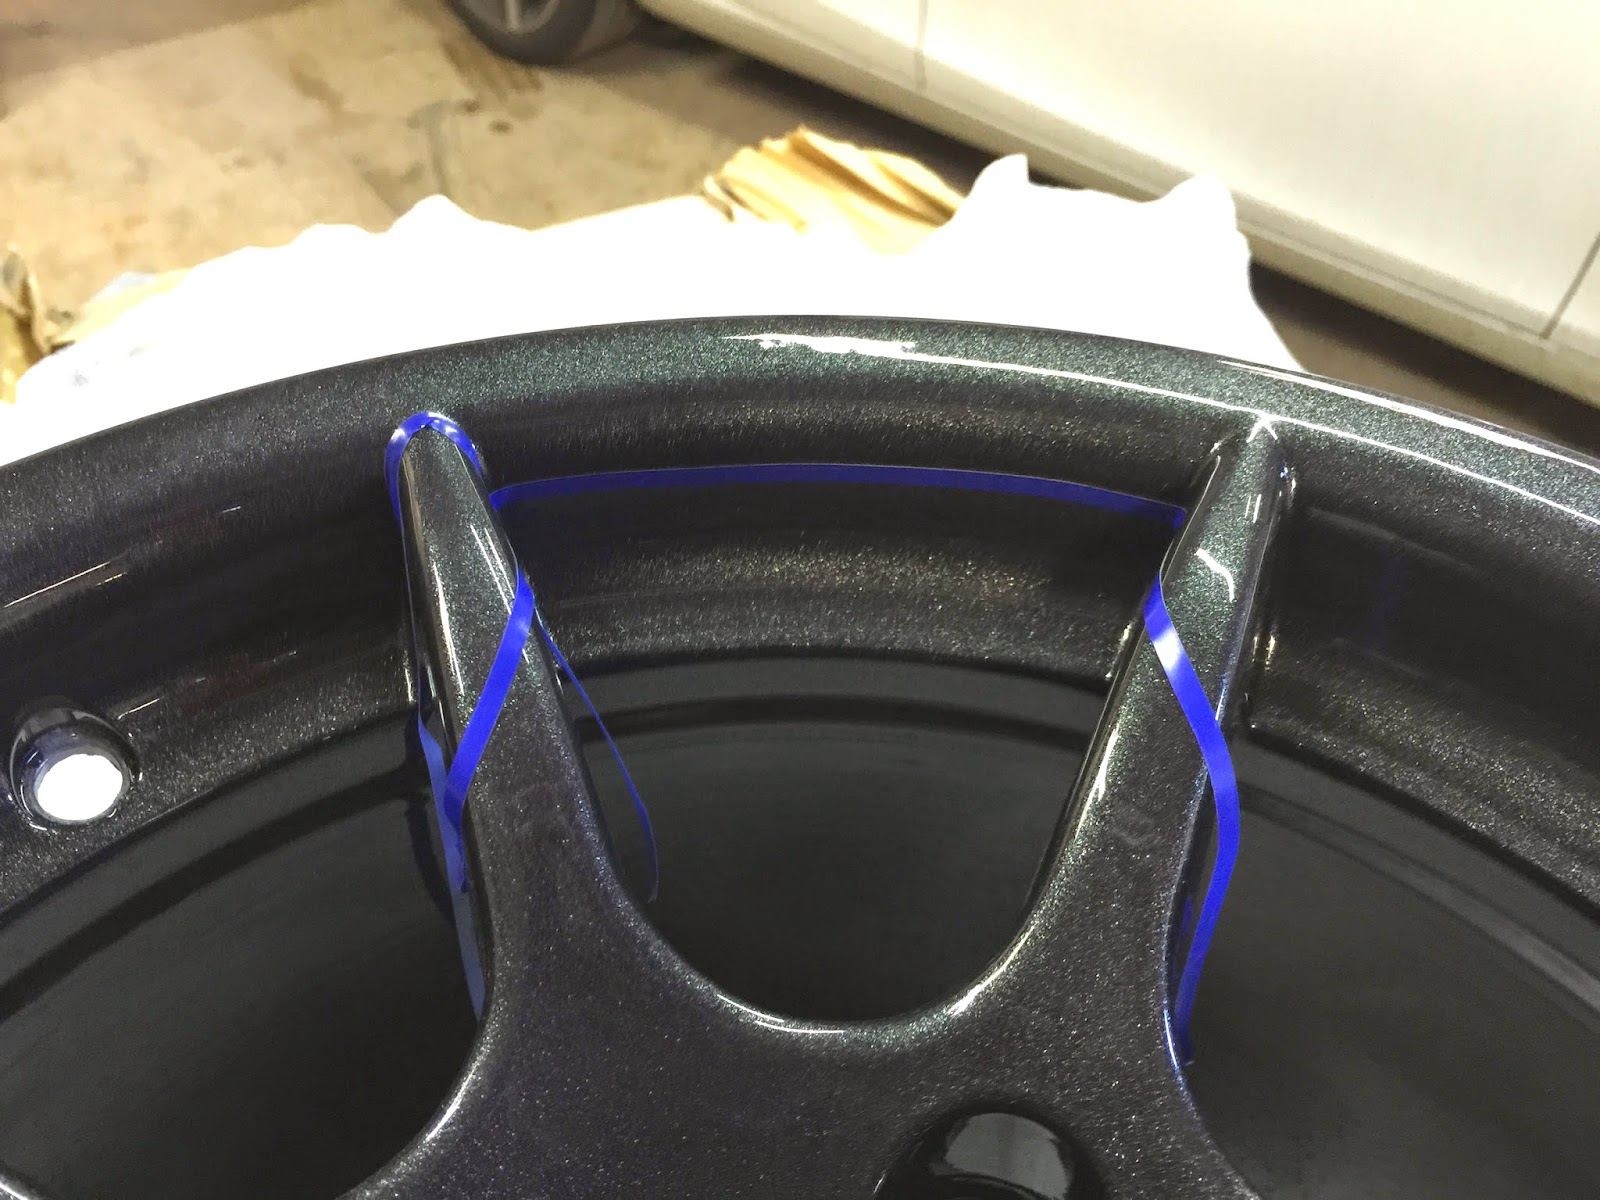 New wheels with a sample mask laid onto rim.